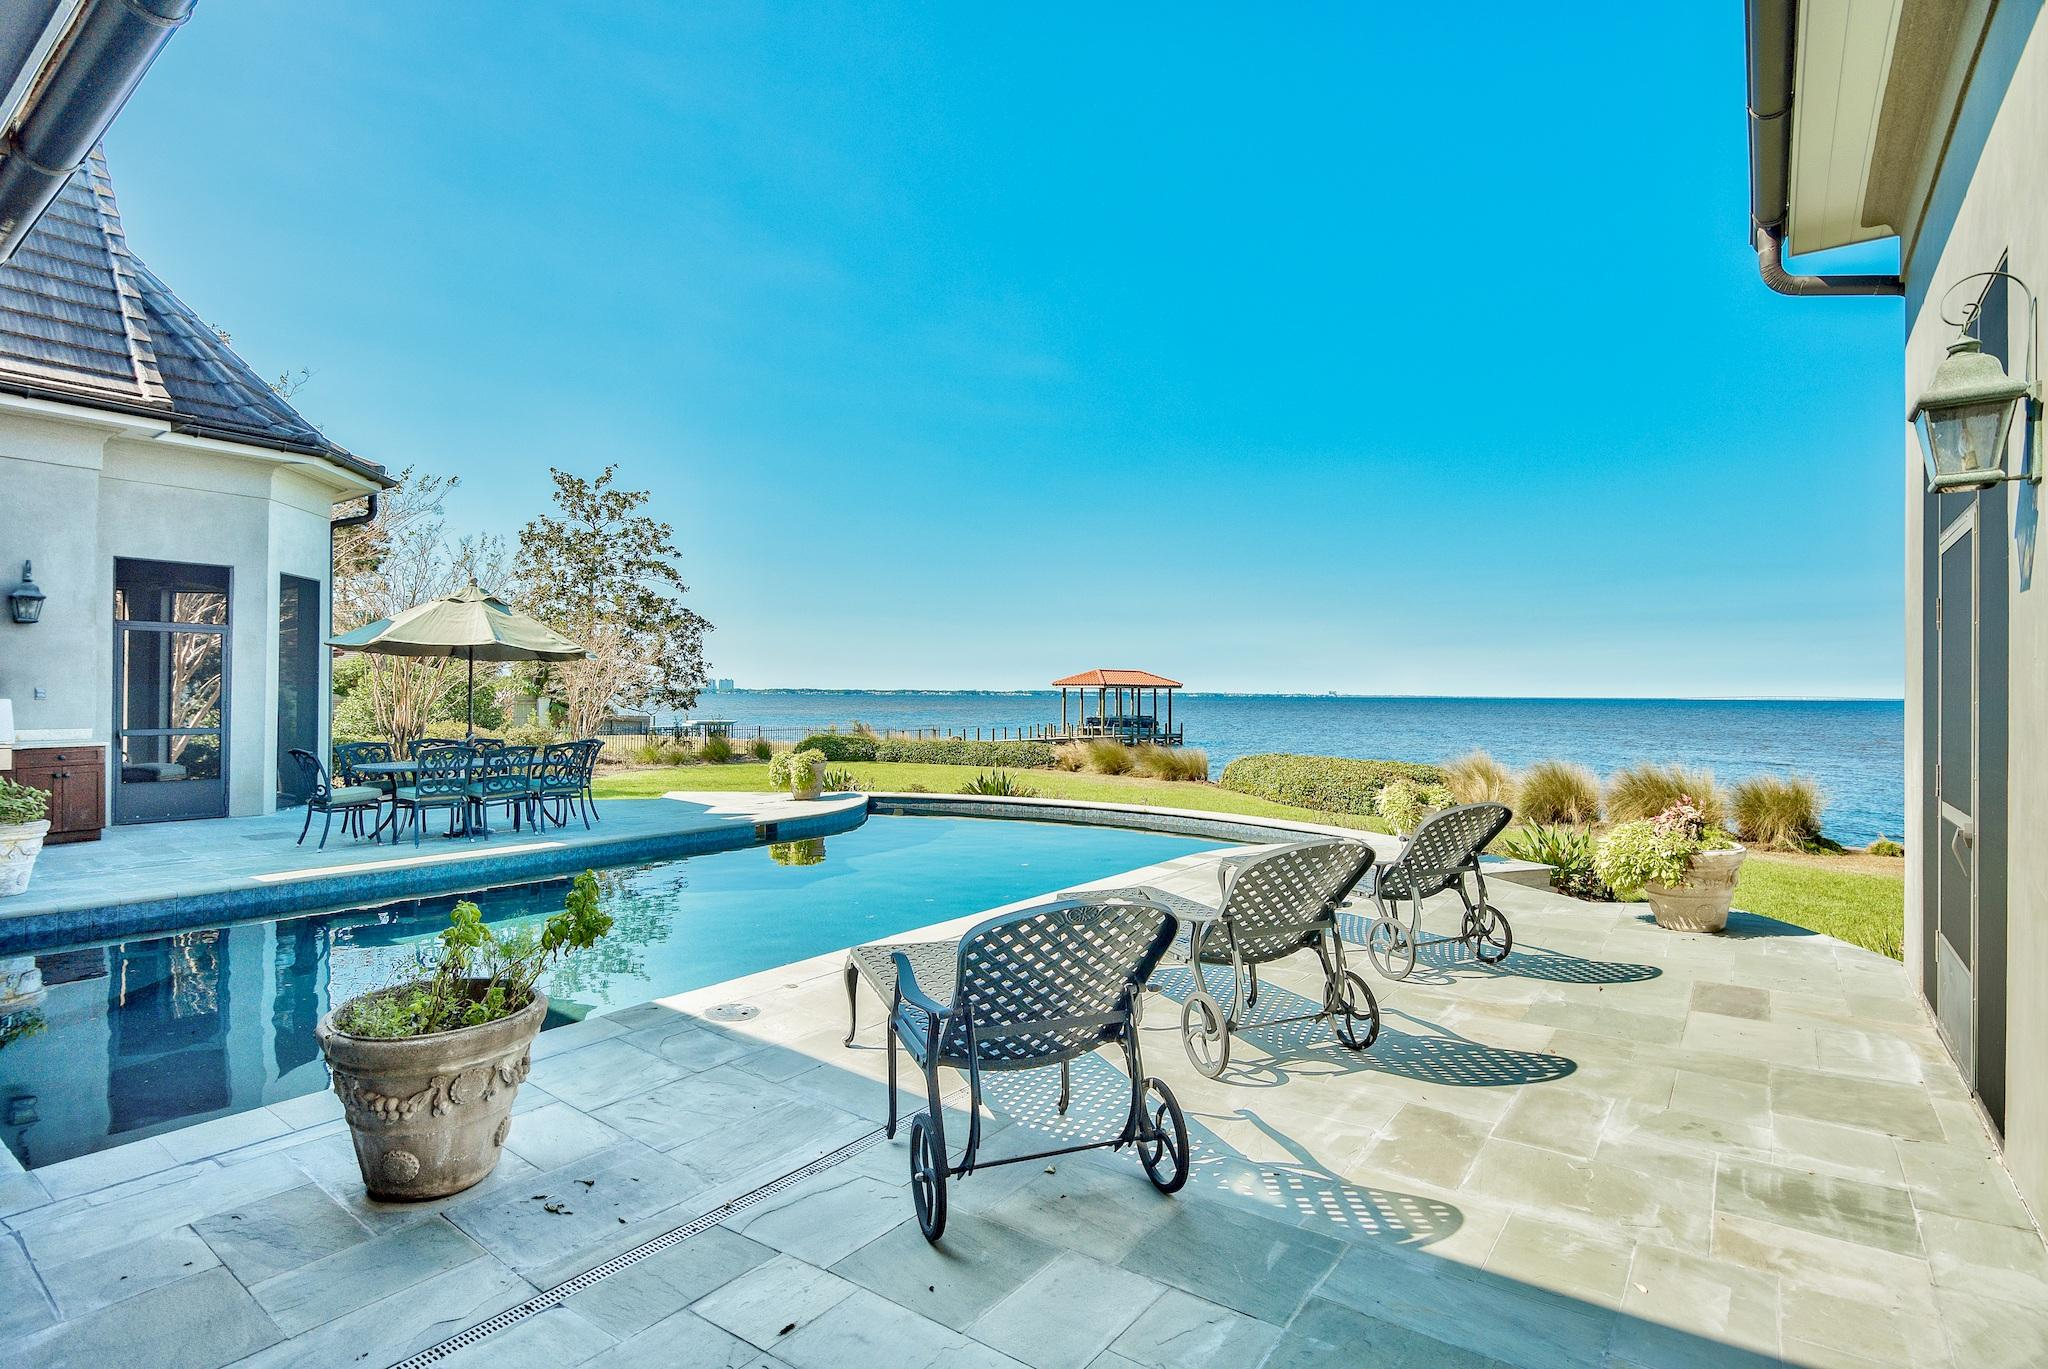 249 Driftwood Point,Santa Rosa Beach,Florida 32459,4 Bedrooms Bedrooms,4 BathroomsBathrooms,Detached single family,Driftwood Point,20131126143817002353000000